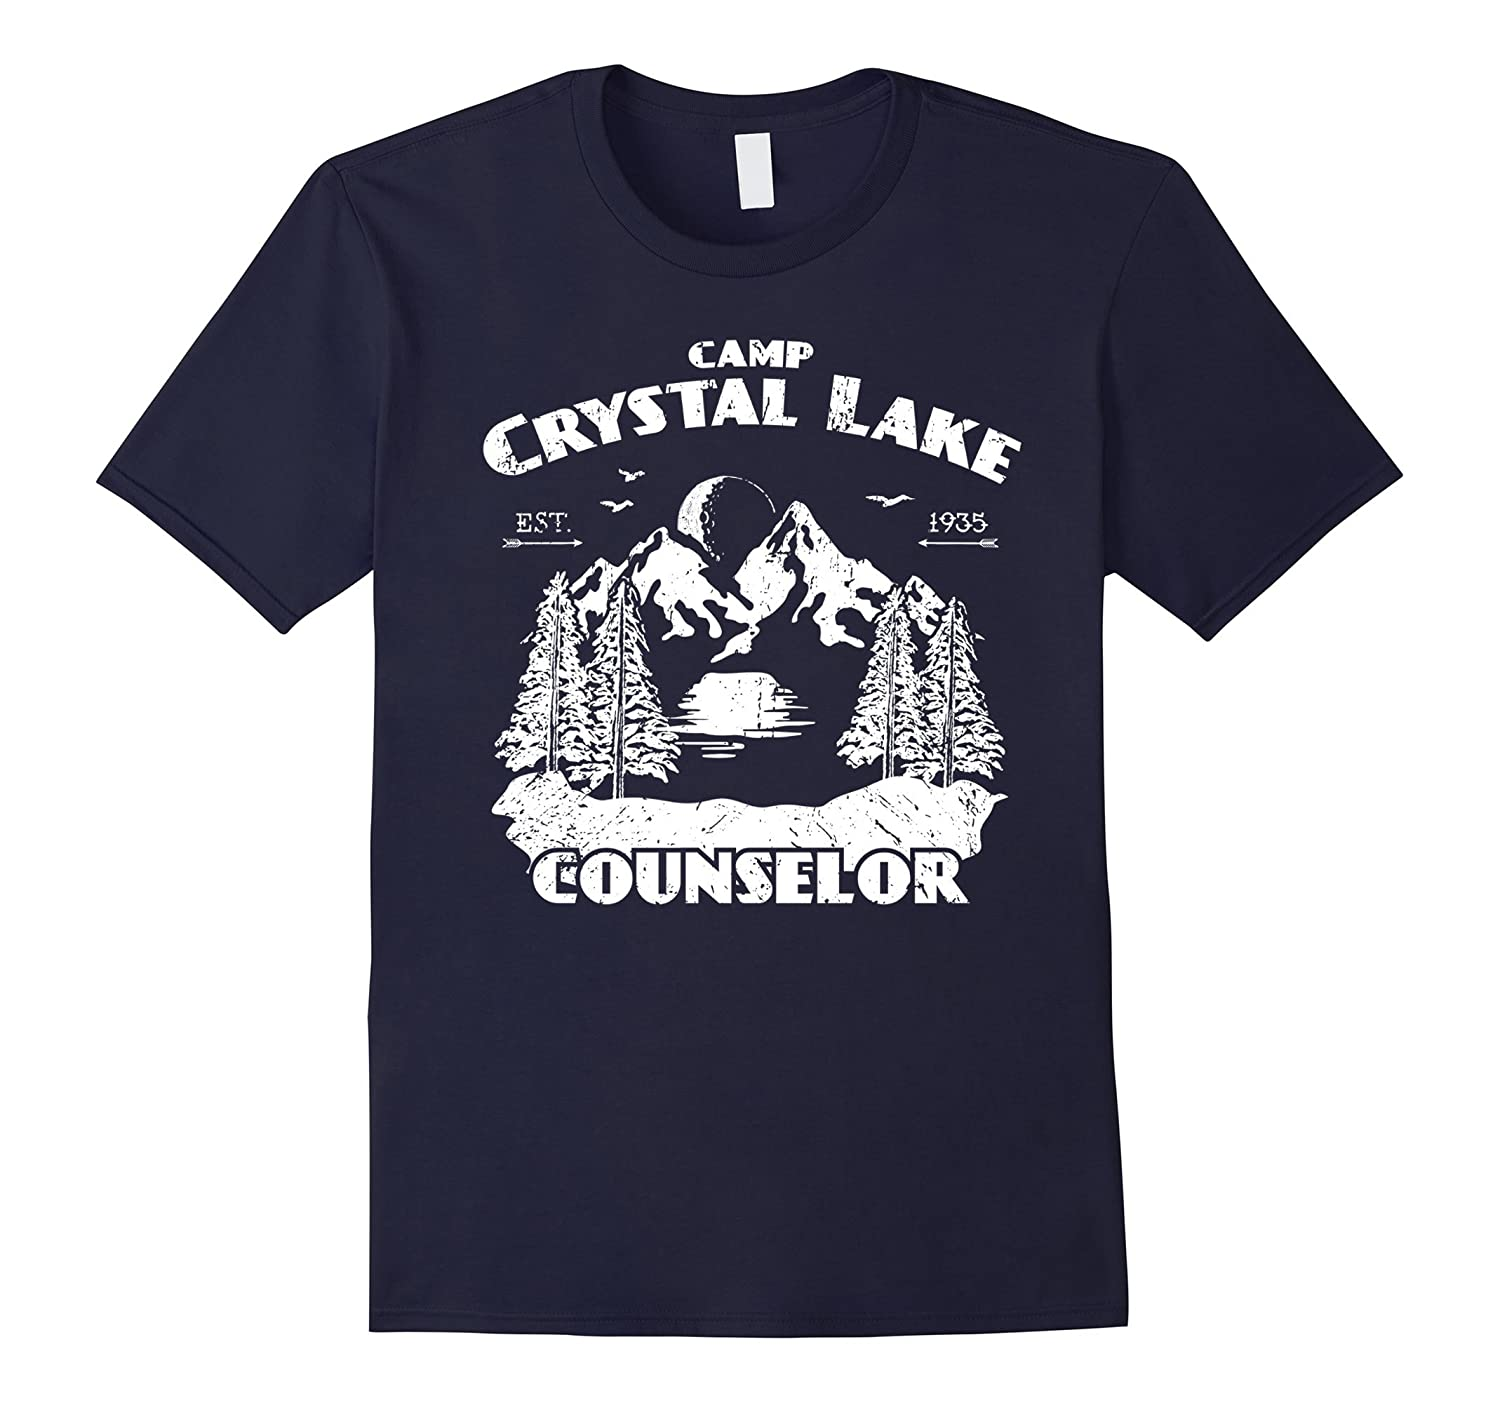 Camp Camping Crystal Lake Counselor Vintage Gift T-Shirt-T-Shirt